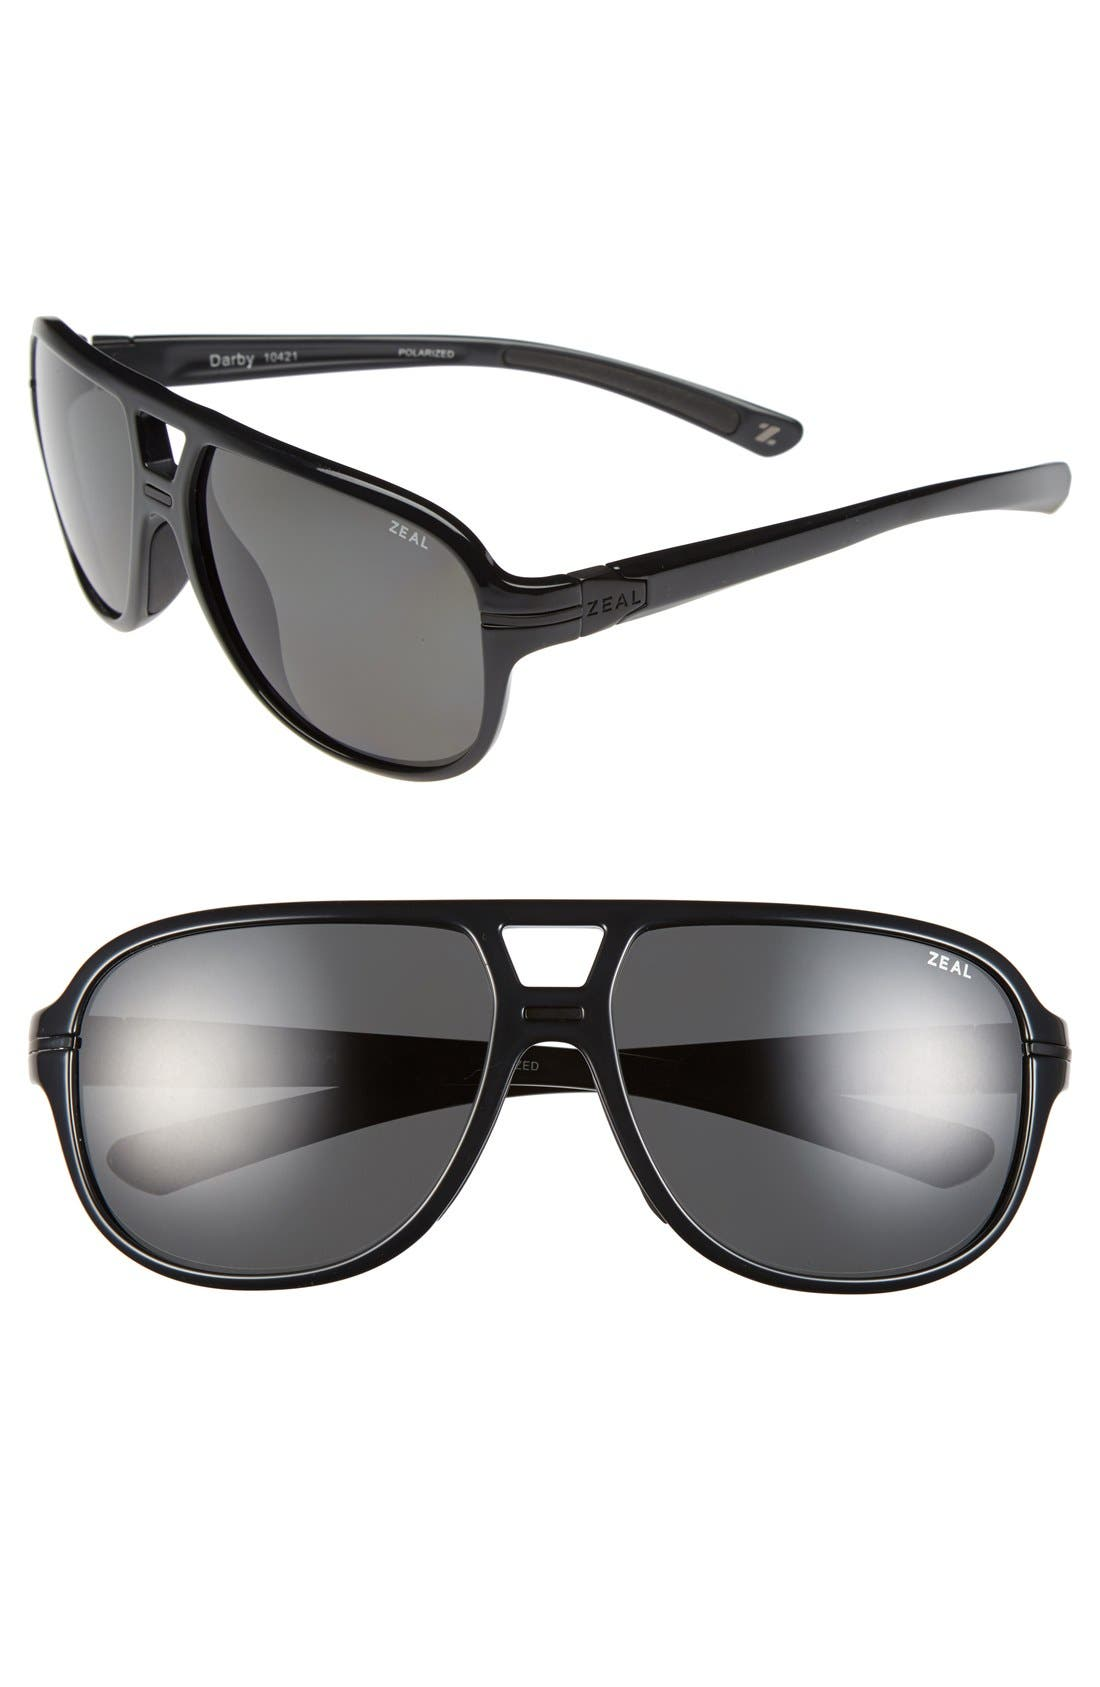 Main Image - Zeal Optics 'Darby' 60mm Polarized Plant Based Aviator Sunglasses